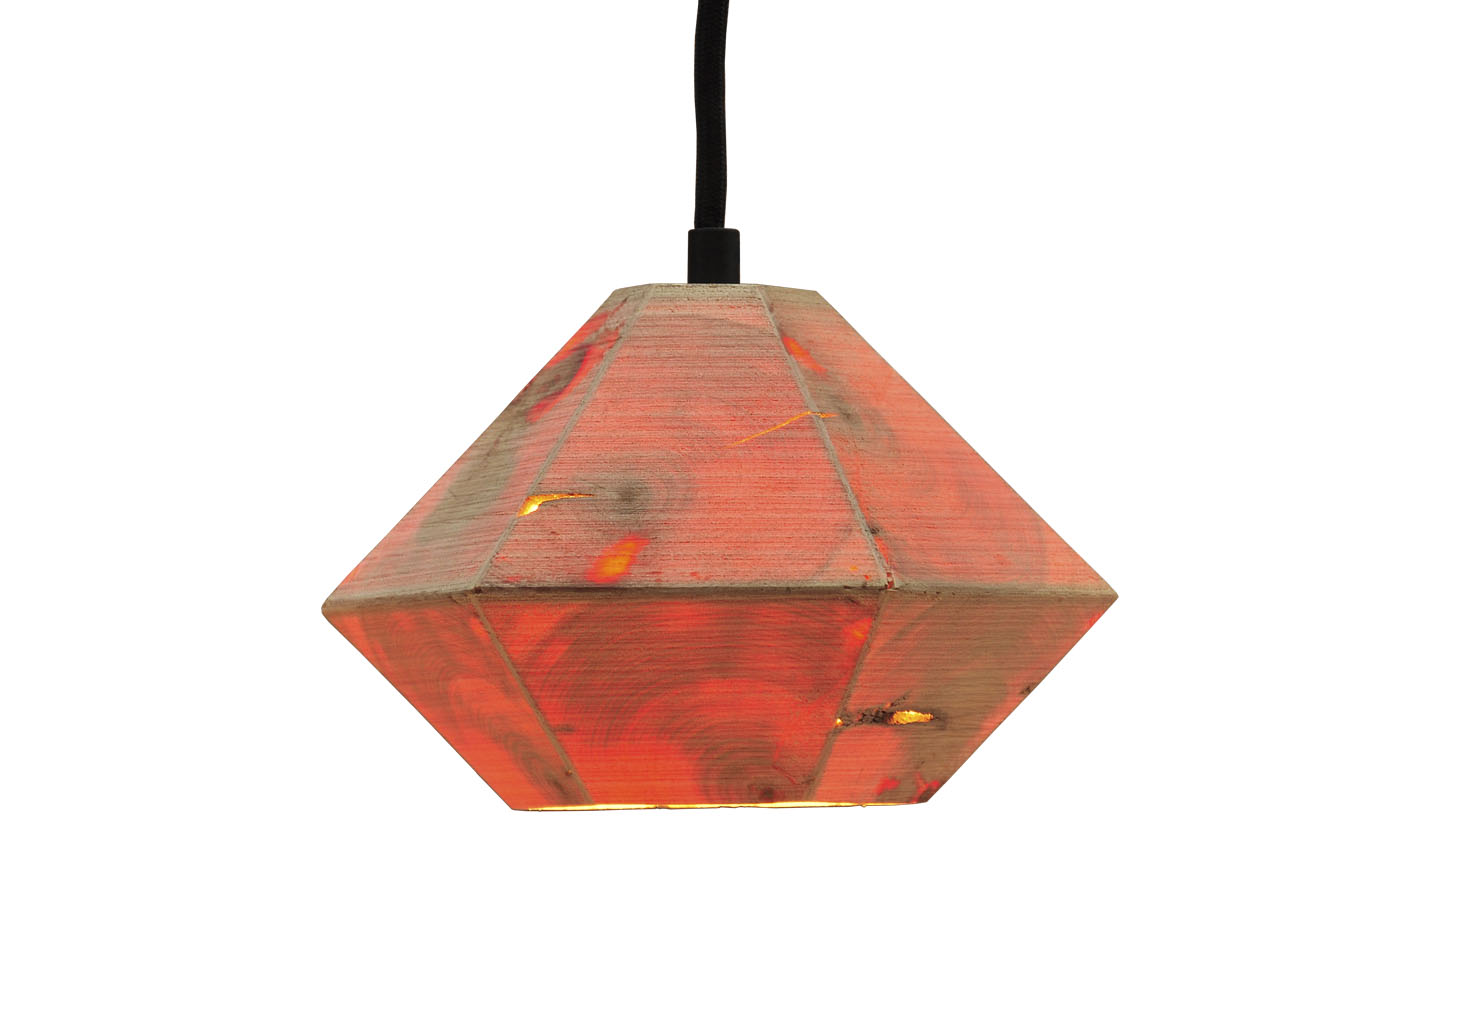 This pendant l& is an uncut diamond. An impressive object created through its distinctive form combined with the glowing red light.  sc 1 st  Almleuchten & Almleuchten - Design Lighting made of Old Timber azcodes.com